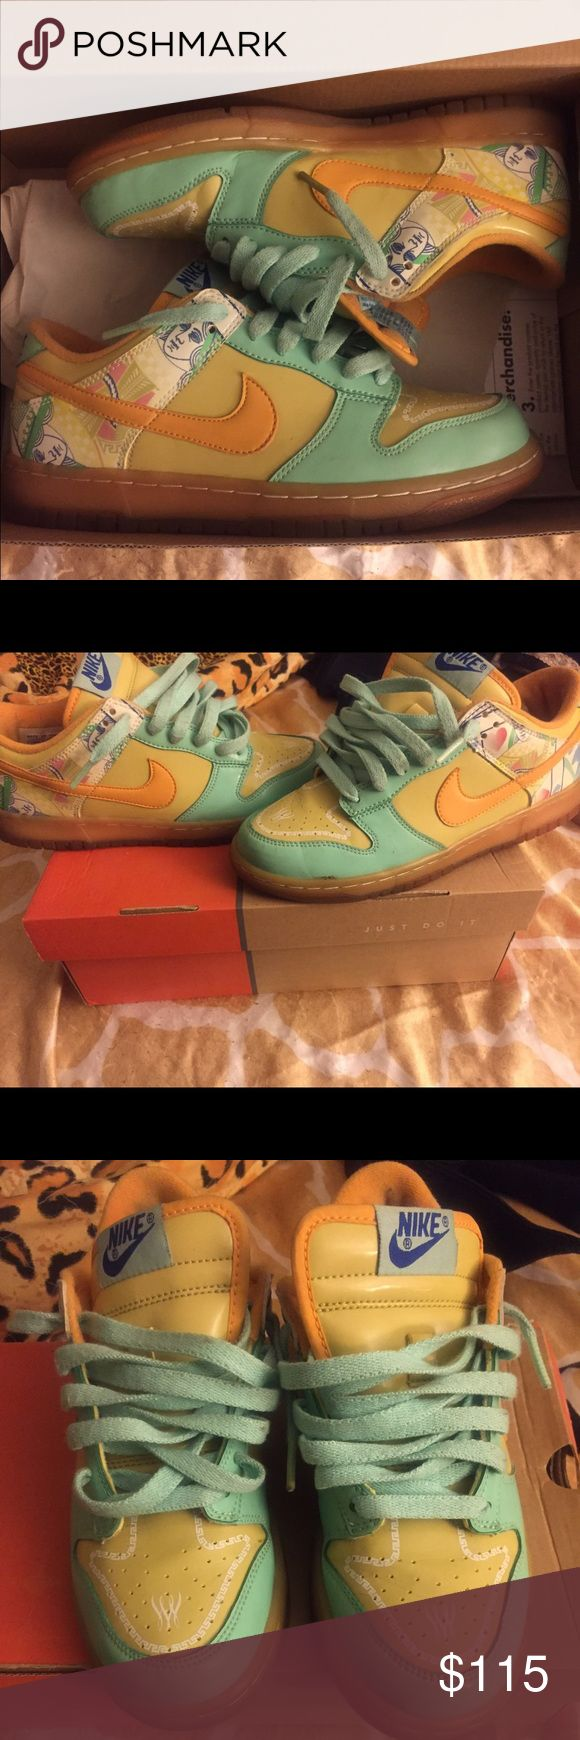 Nike Serena Williams Dunks Authentic Nike Serena Williams dunks. These are a part of the royal collection. Rare shoe ! Women's size 7.5 Nike Shoes Sneakers